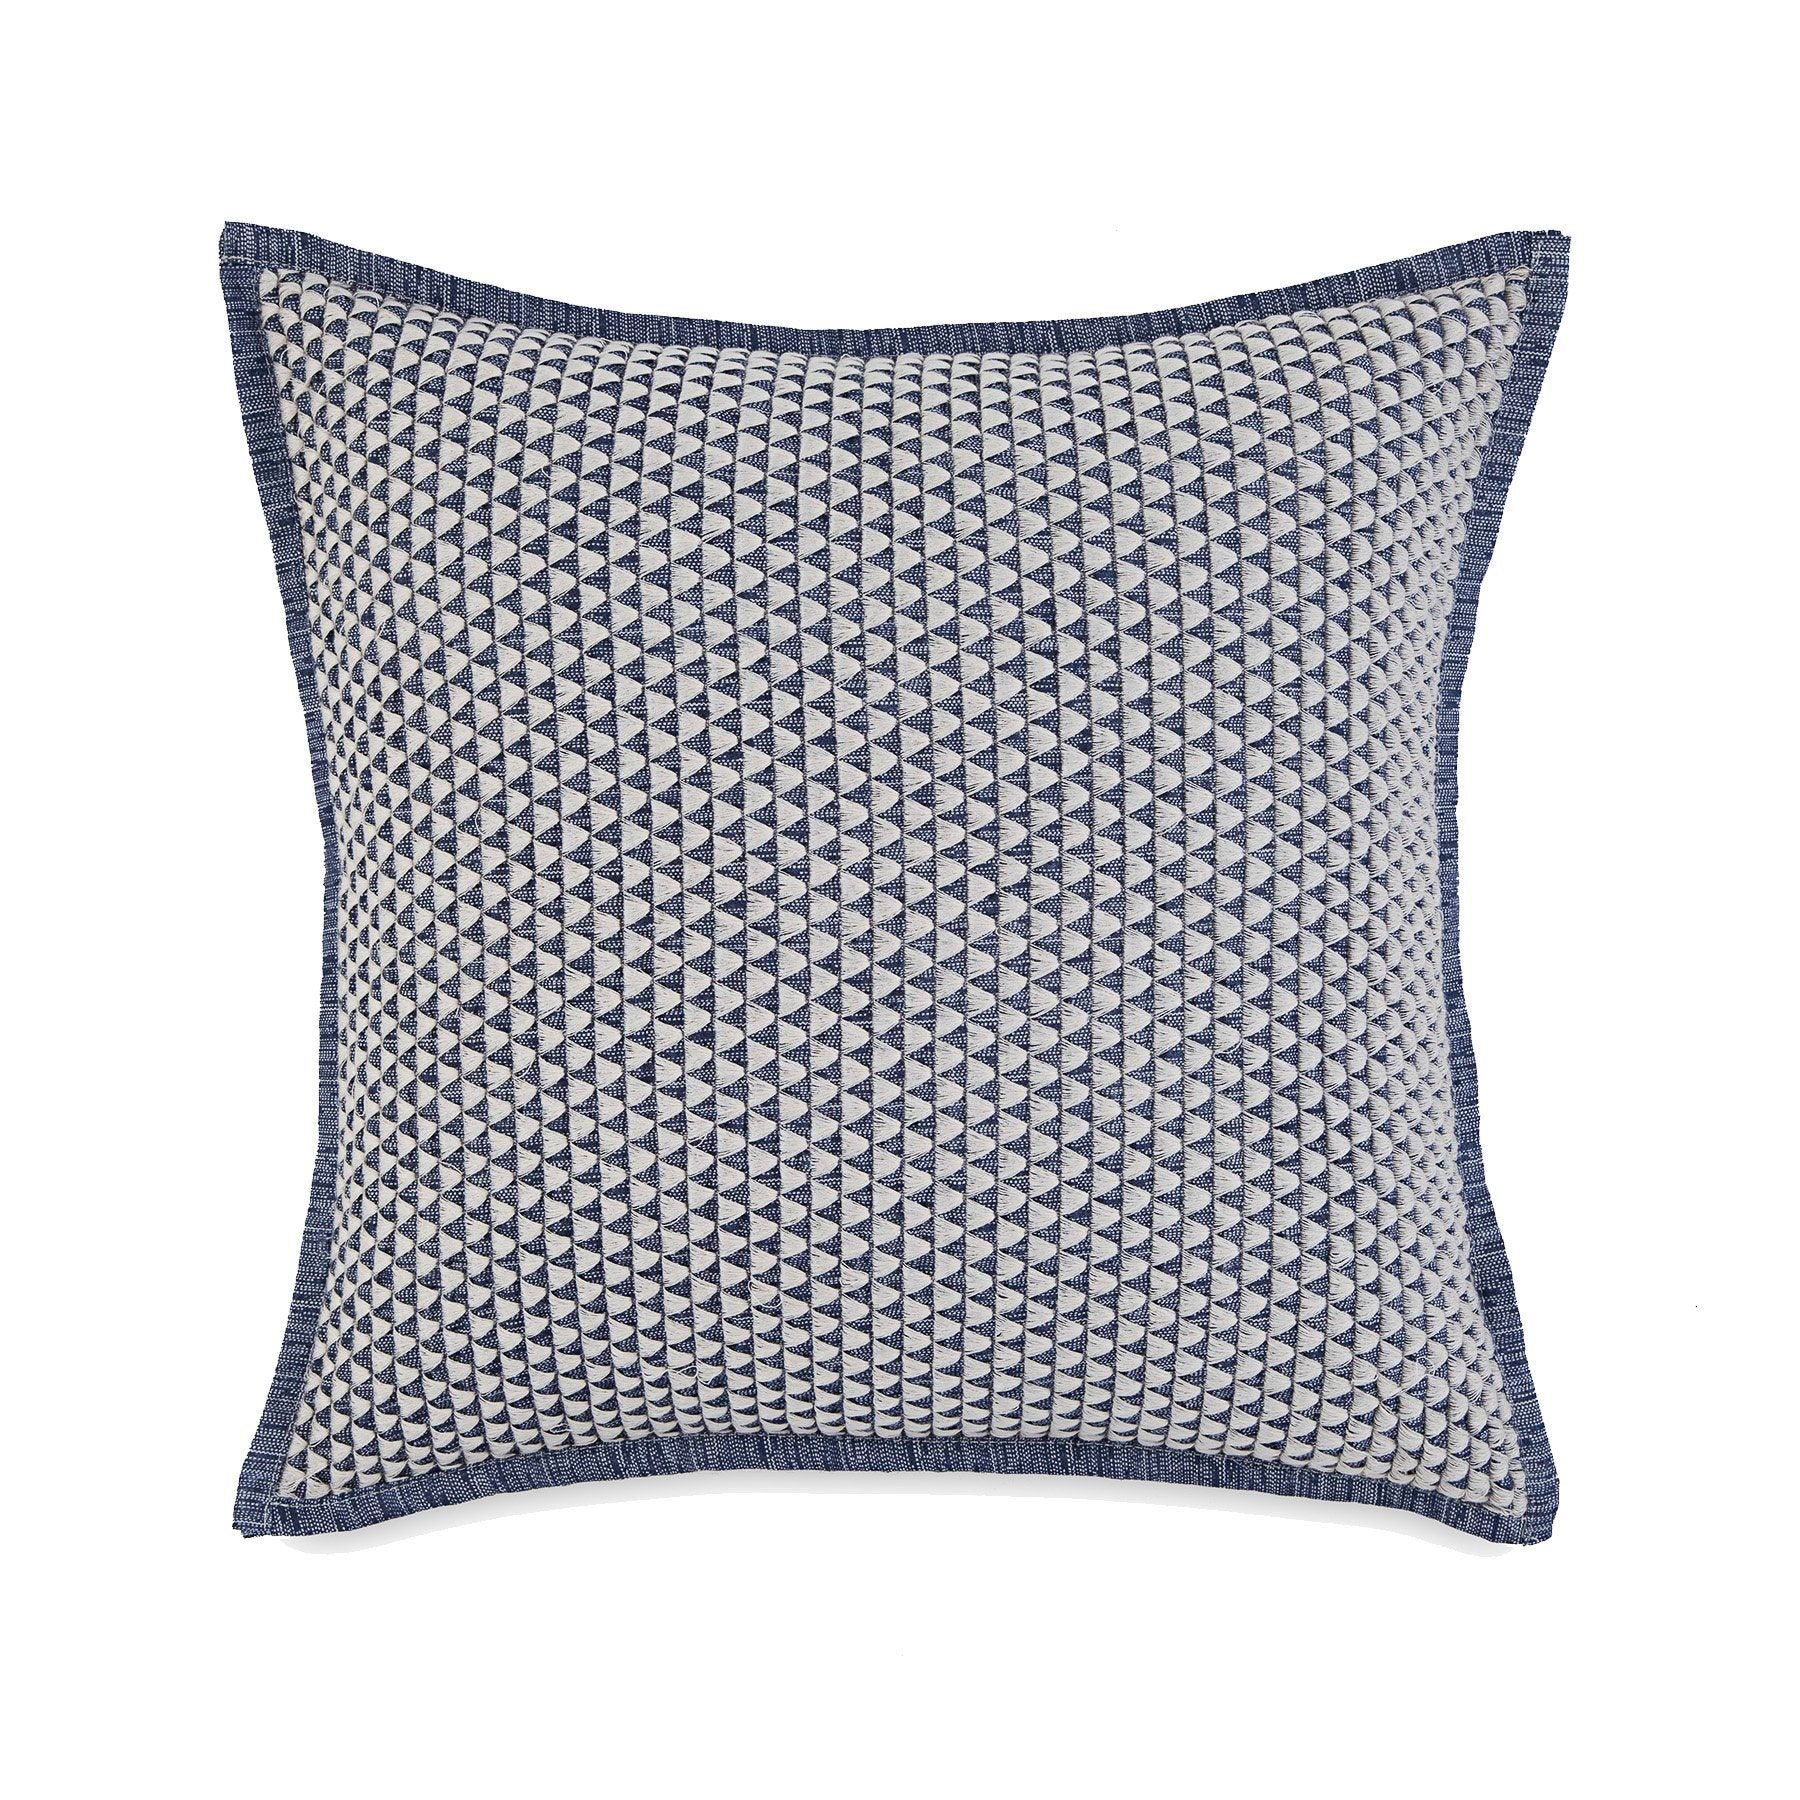 Bayside Navy Eyelet Throw Pillow Southern Tide